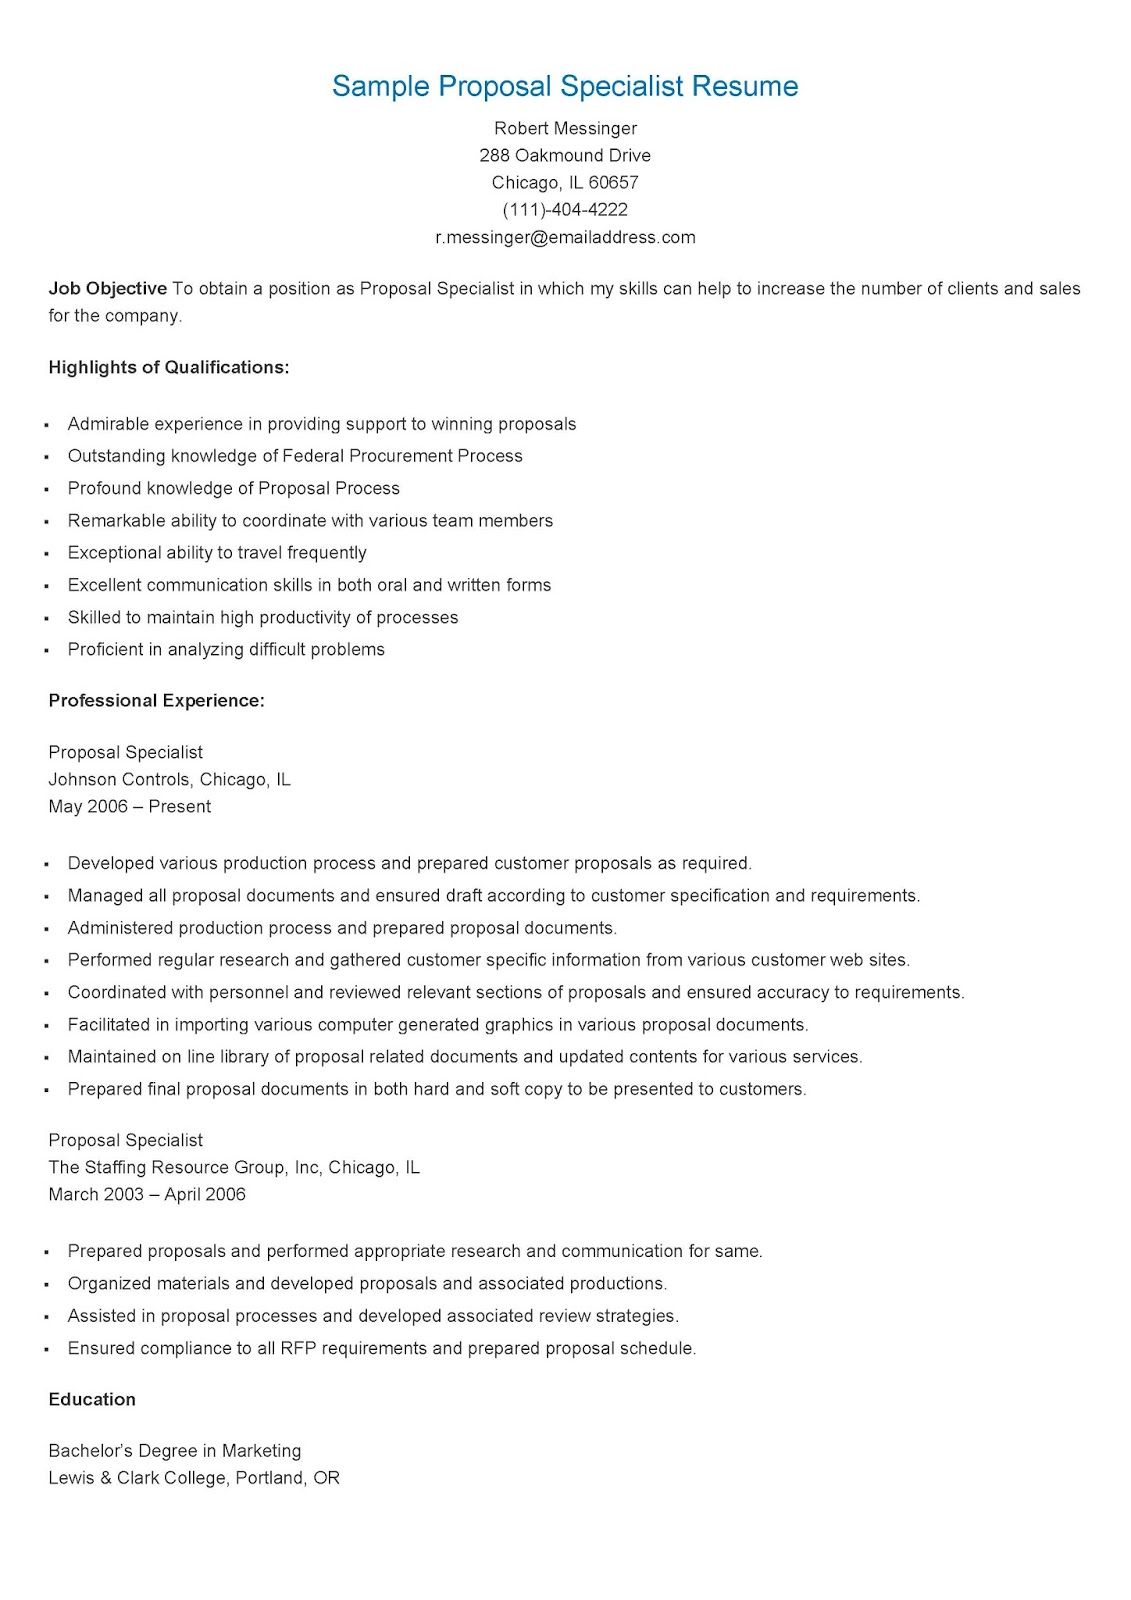 Sample Proposal Specialist Resume  Resame    Proposals